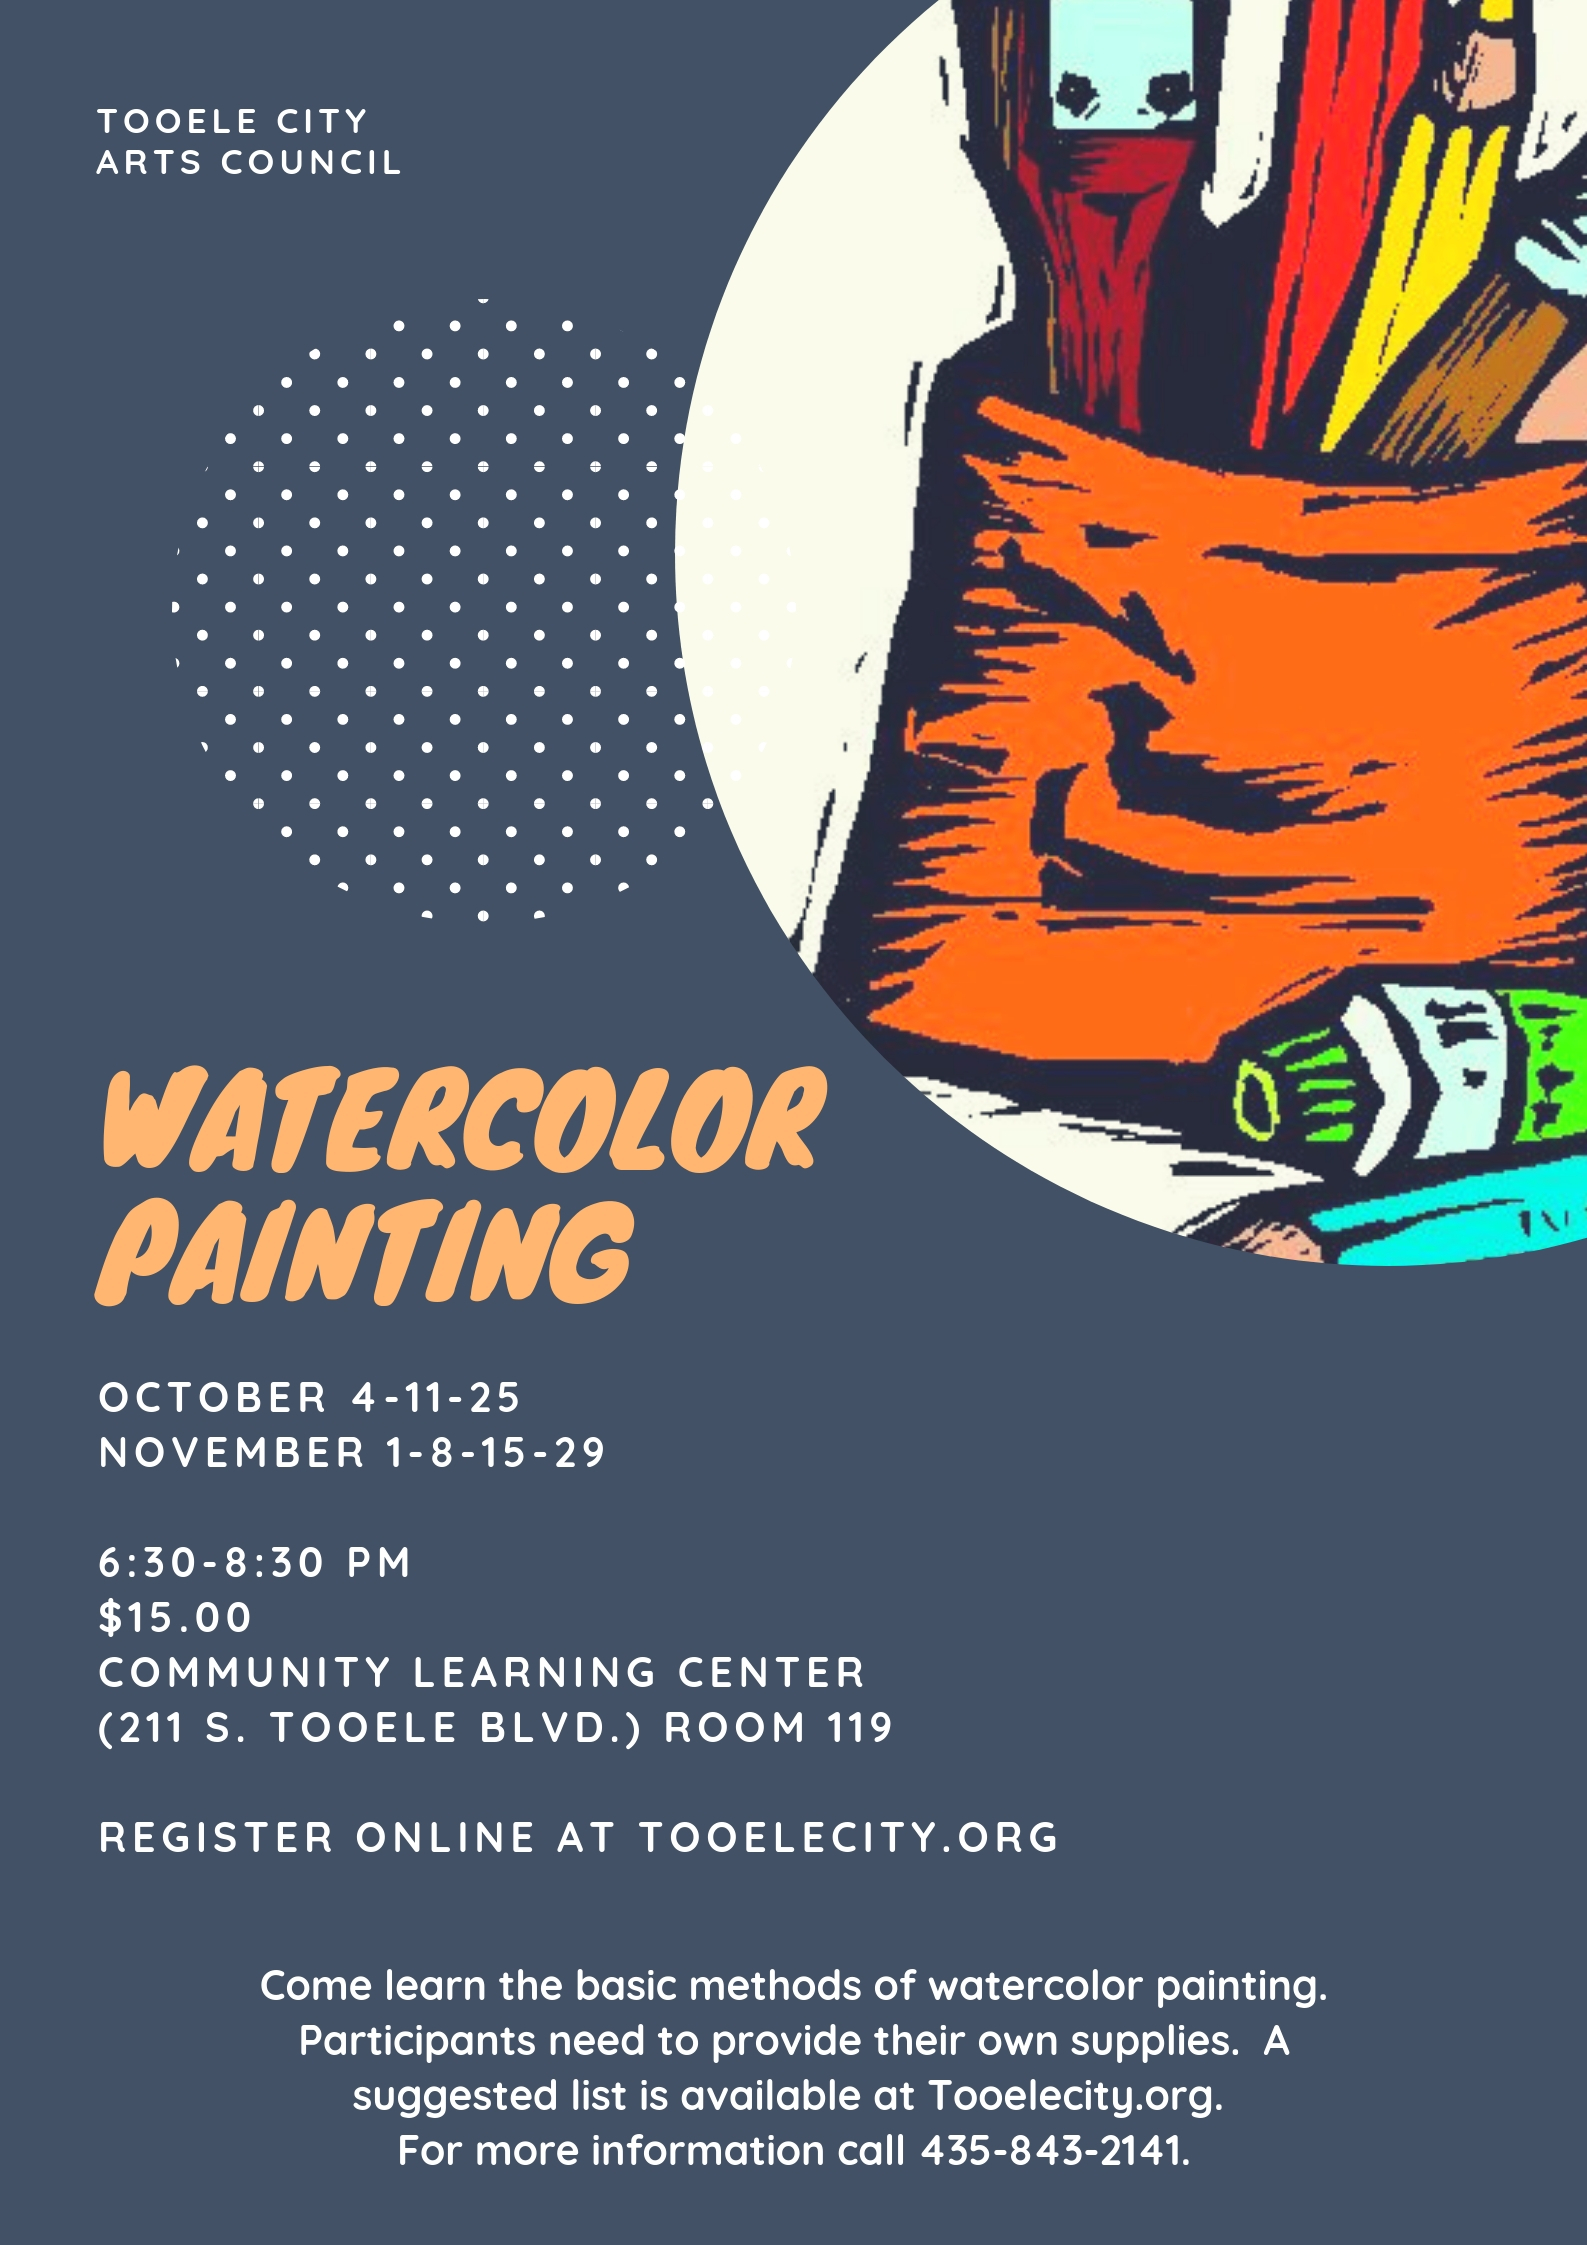 Watercolor Painting 2018 @ Community Learning Center Room #119 | Tooele | Utah | United States